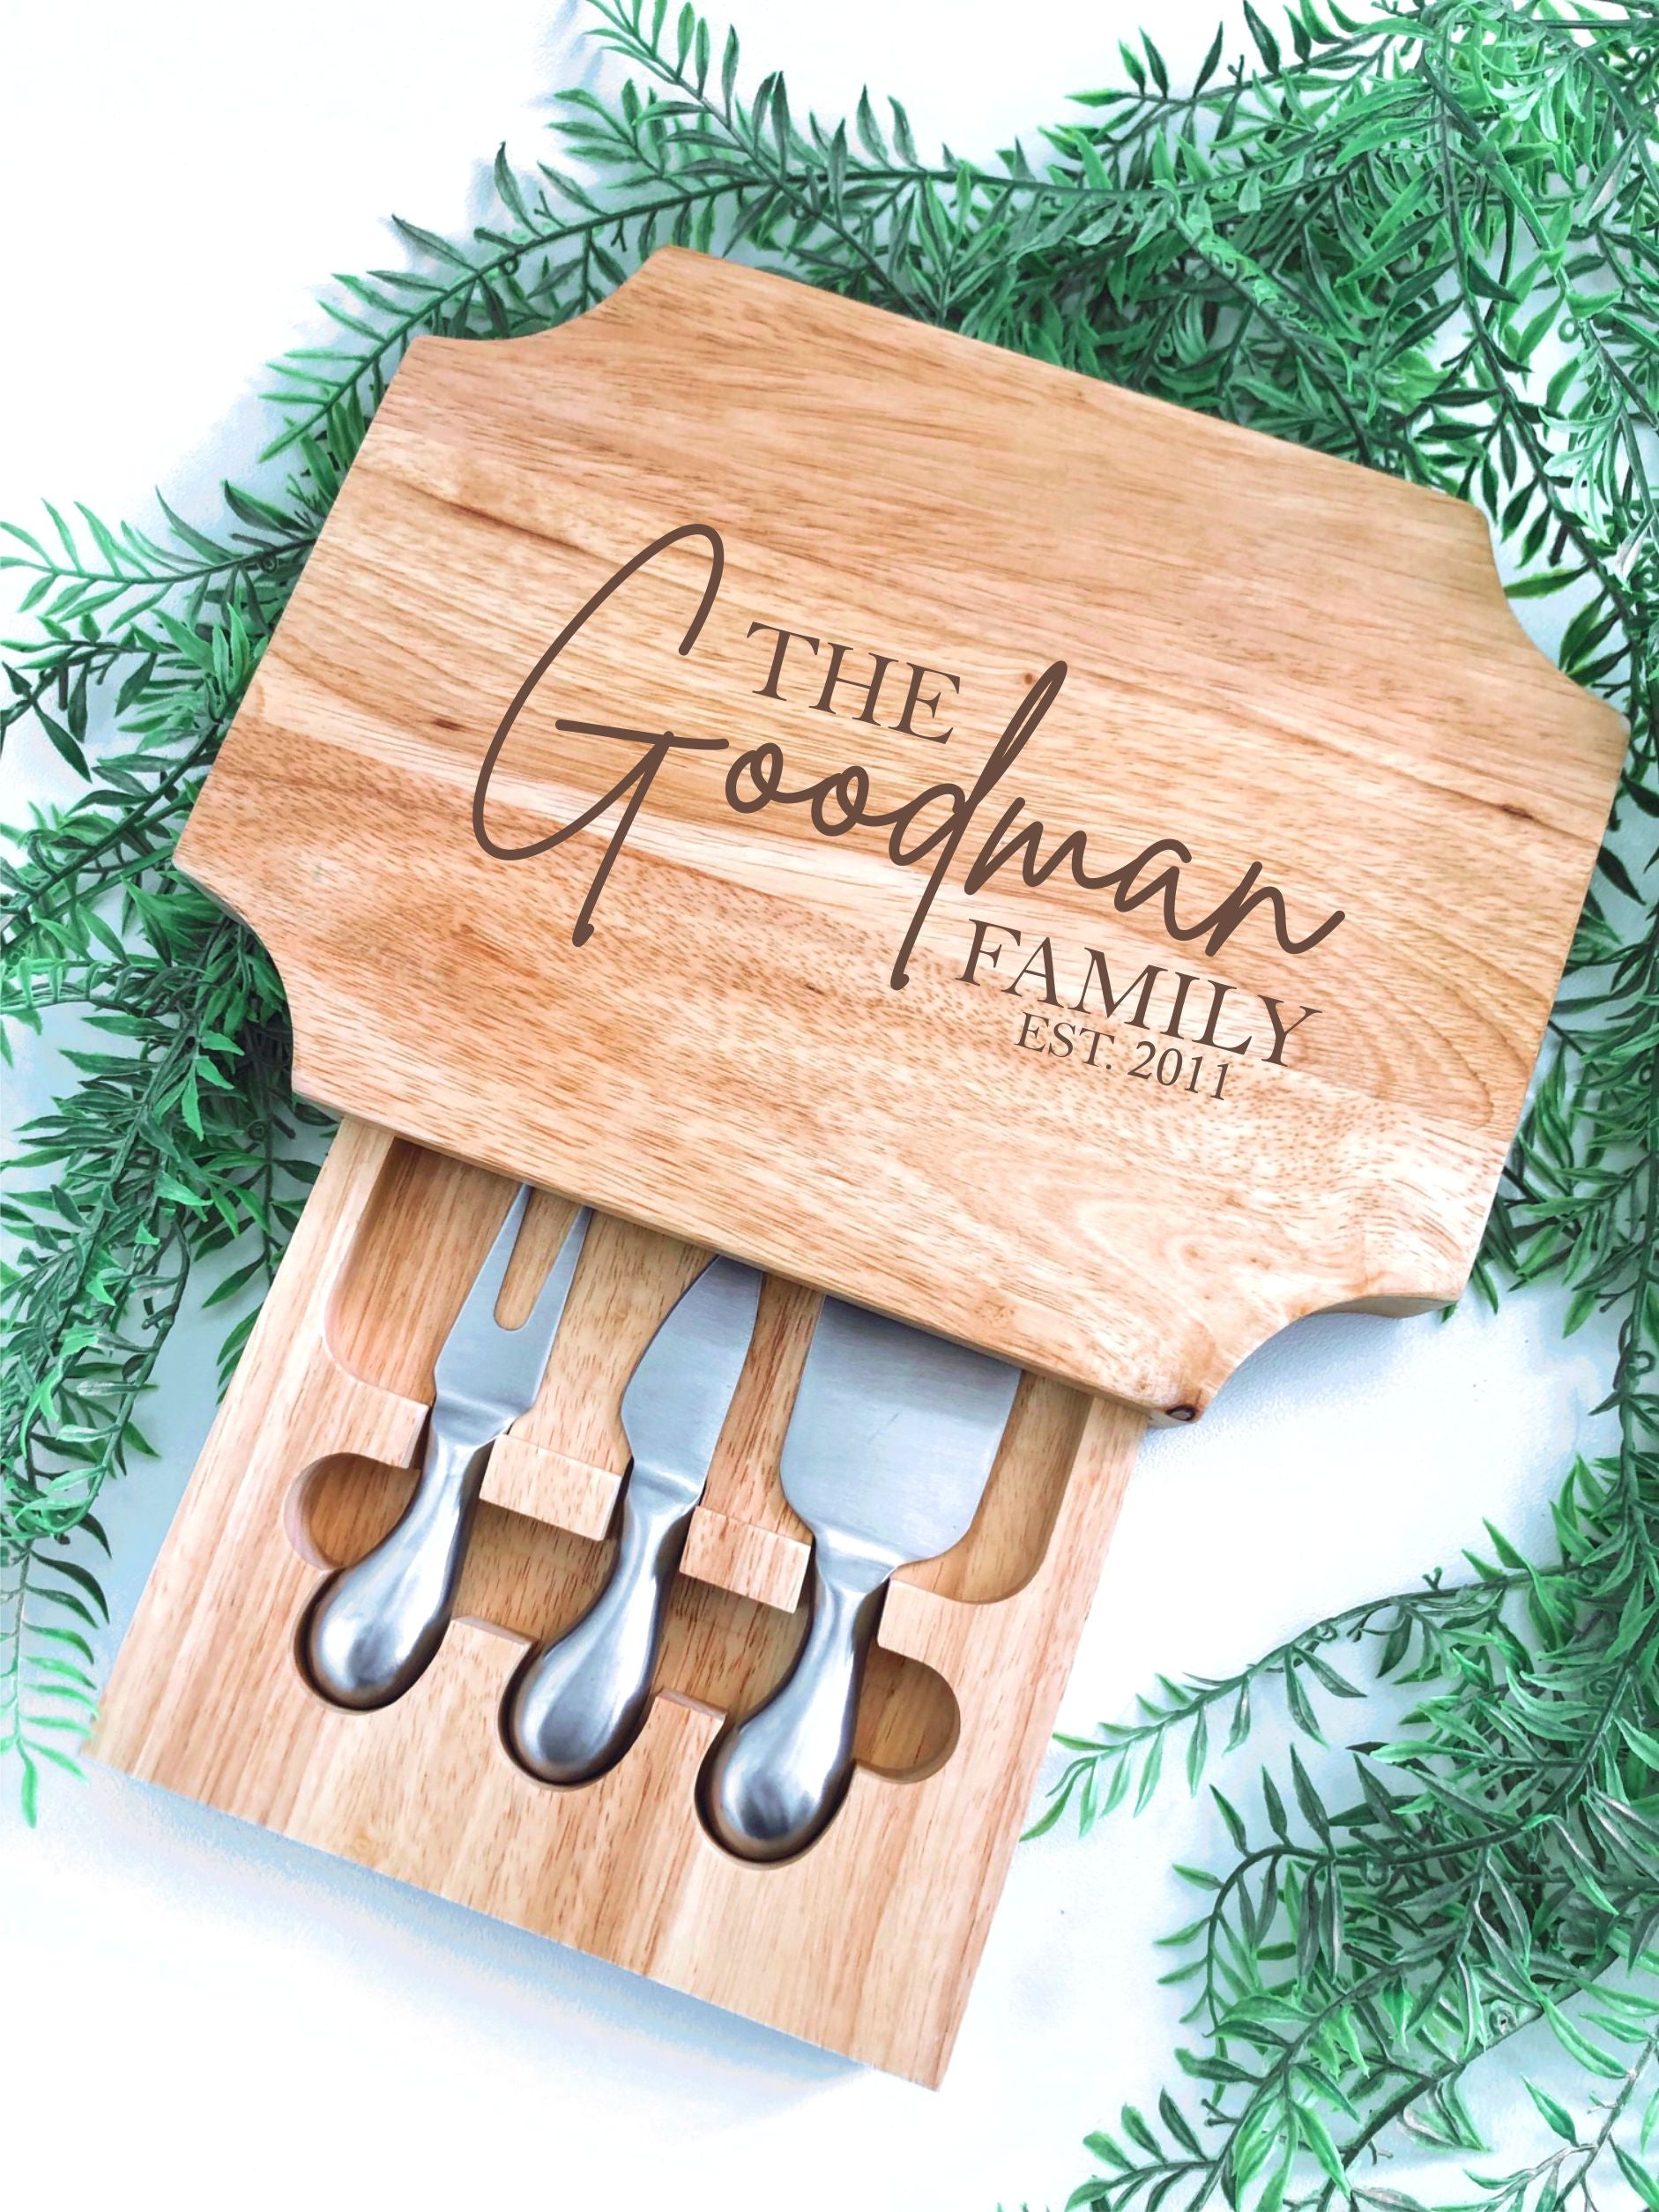 Wooden cheese serving set